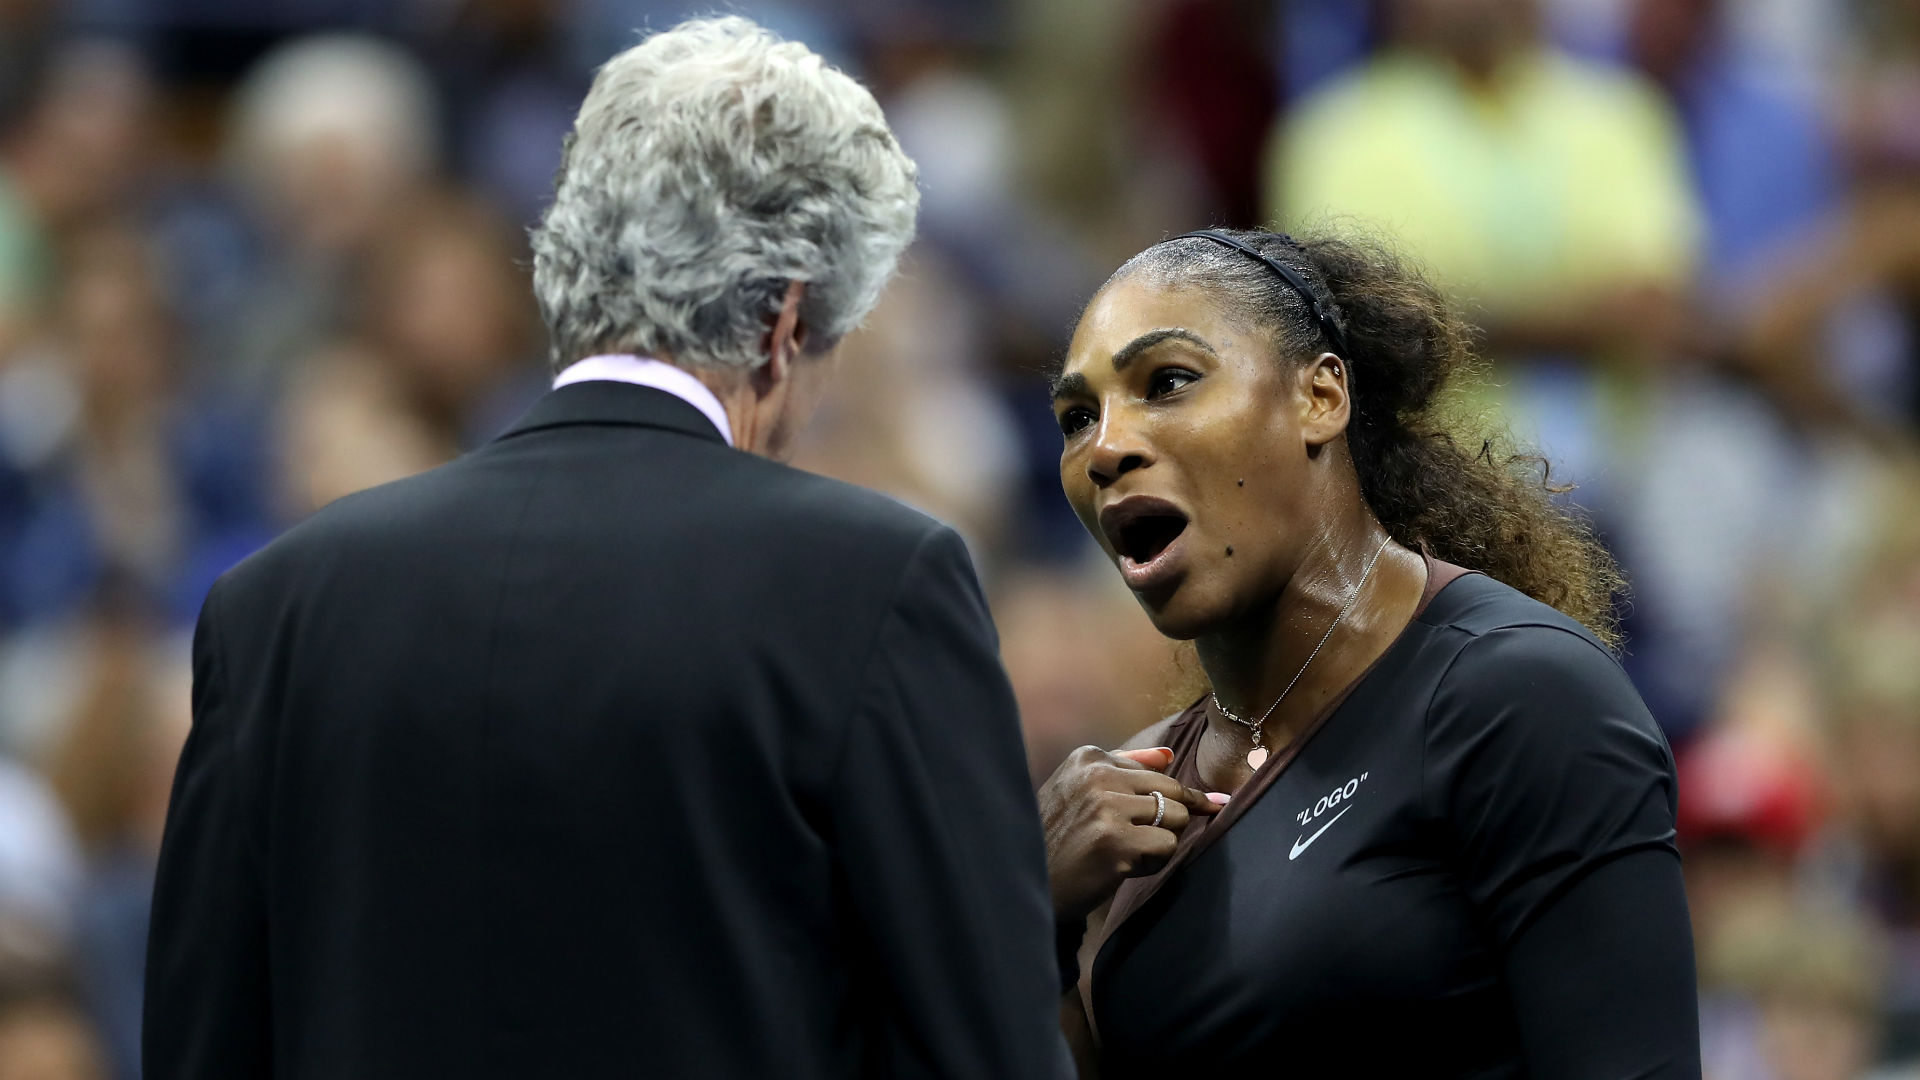 Shock apology: Huge twist in Serena Williams scandal